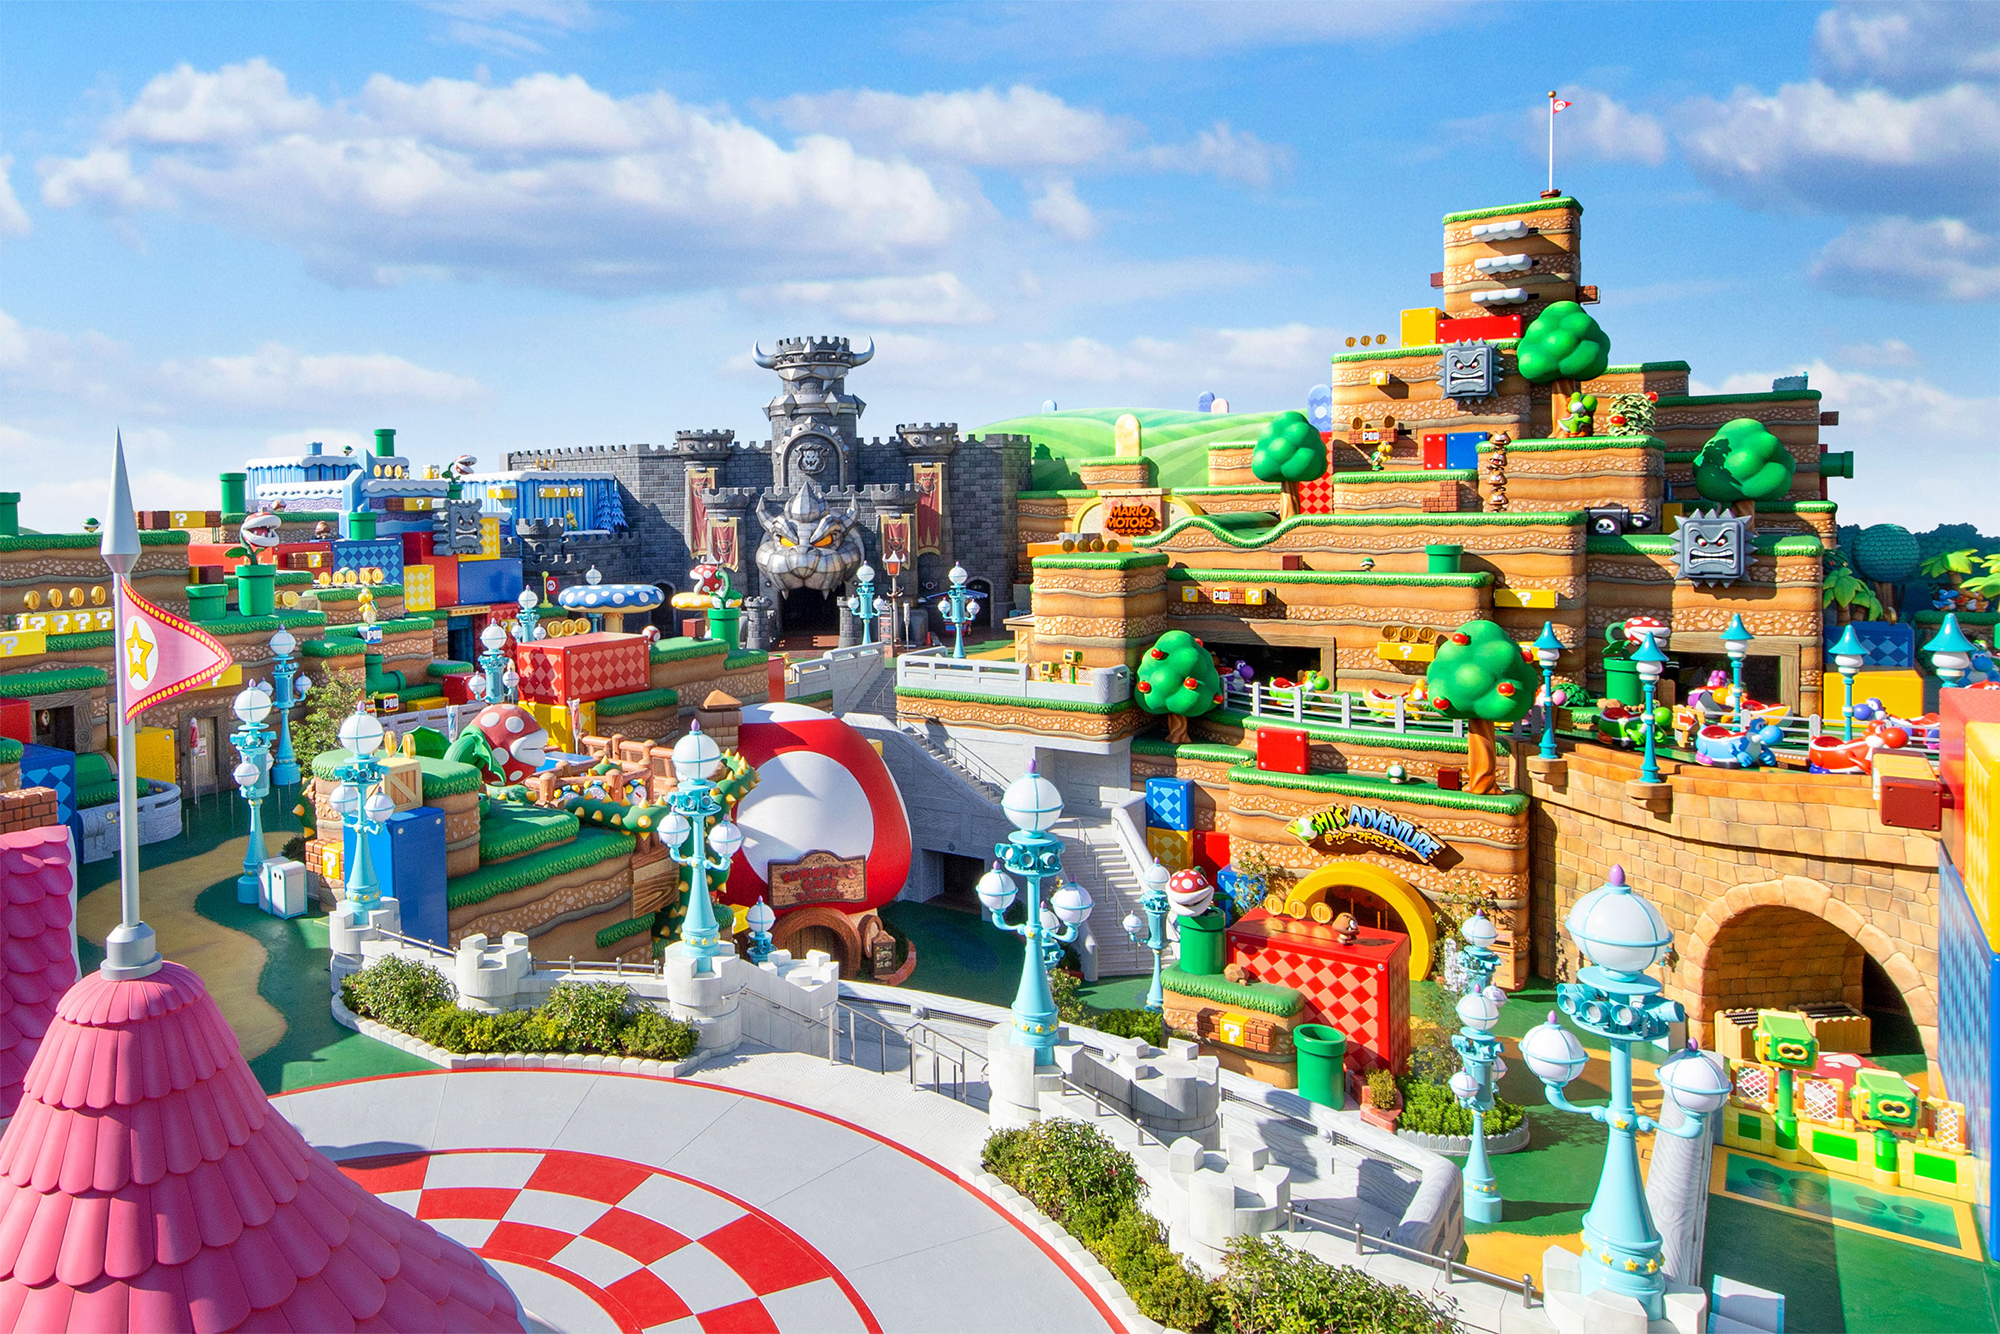 A shot of Super Nintendo World, complete but not yet open.